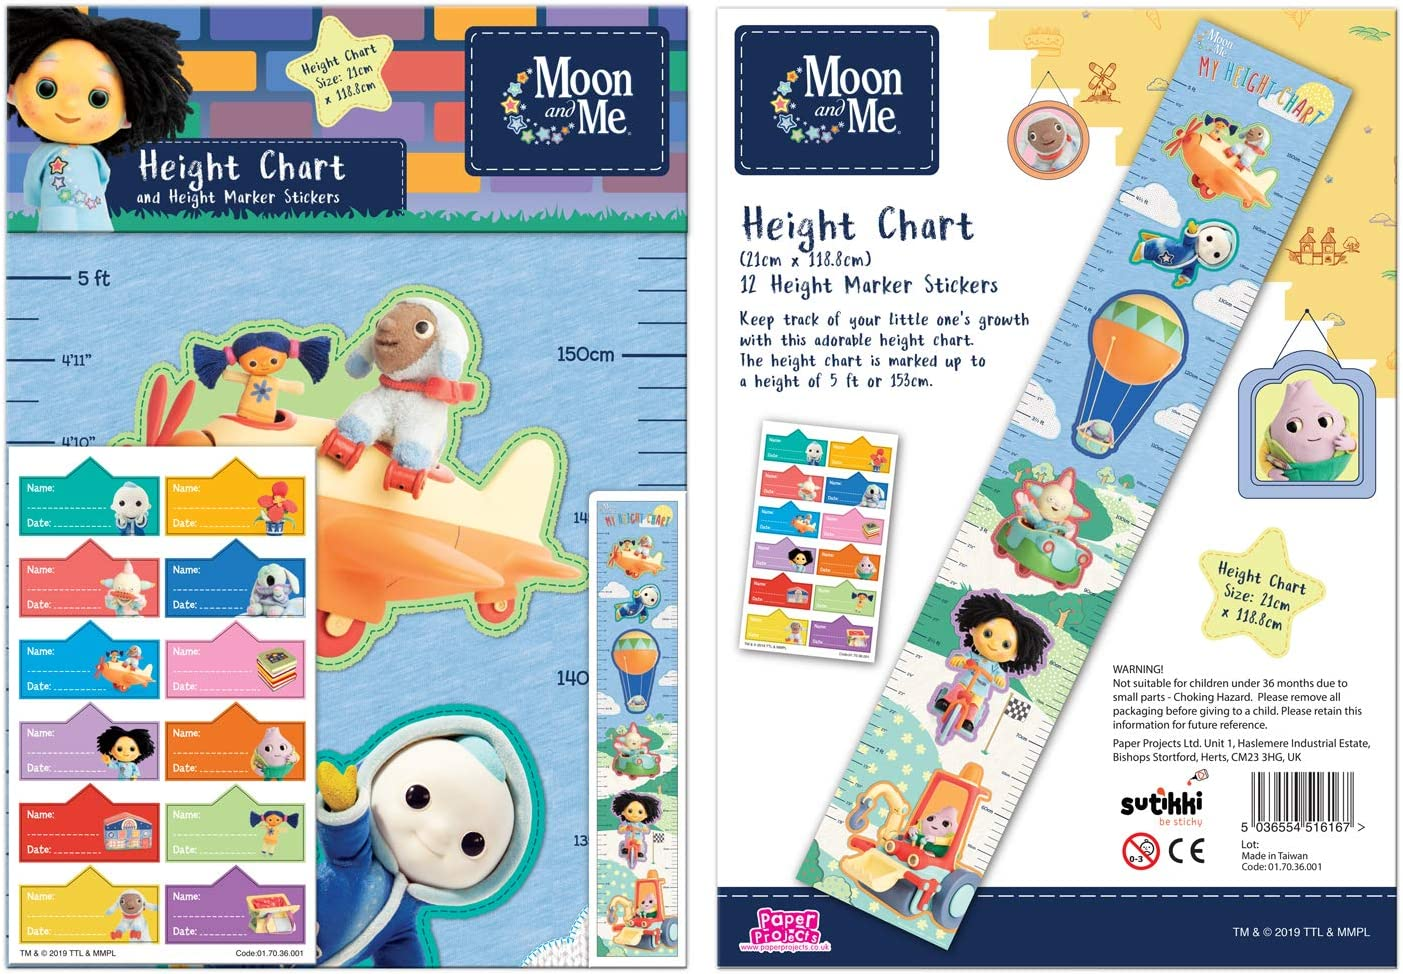 Paper Projects 01.70.36.001 Moon and Me Height Chart